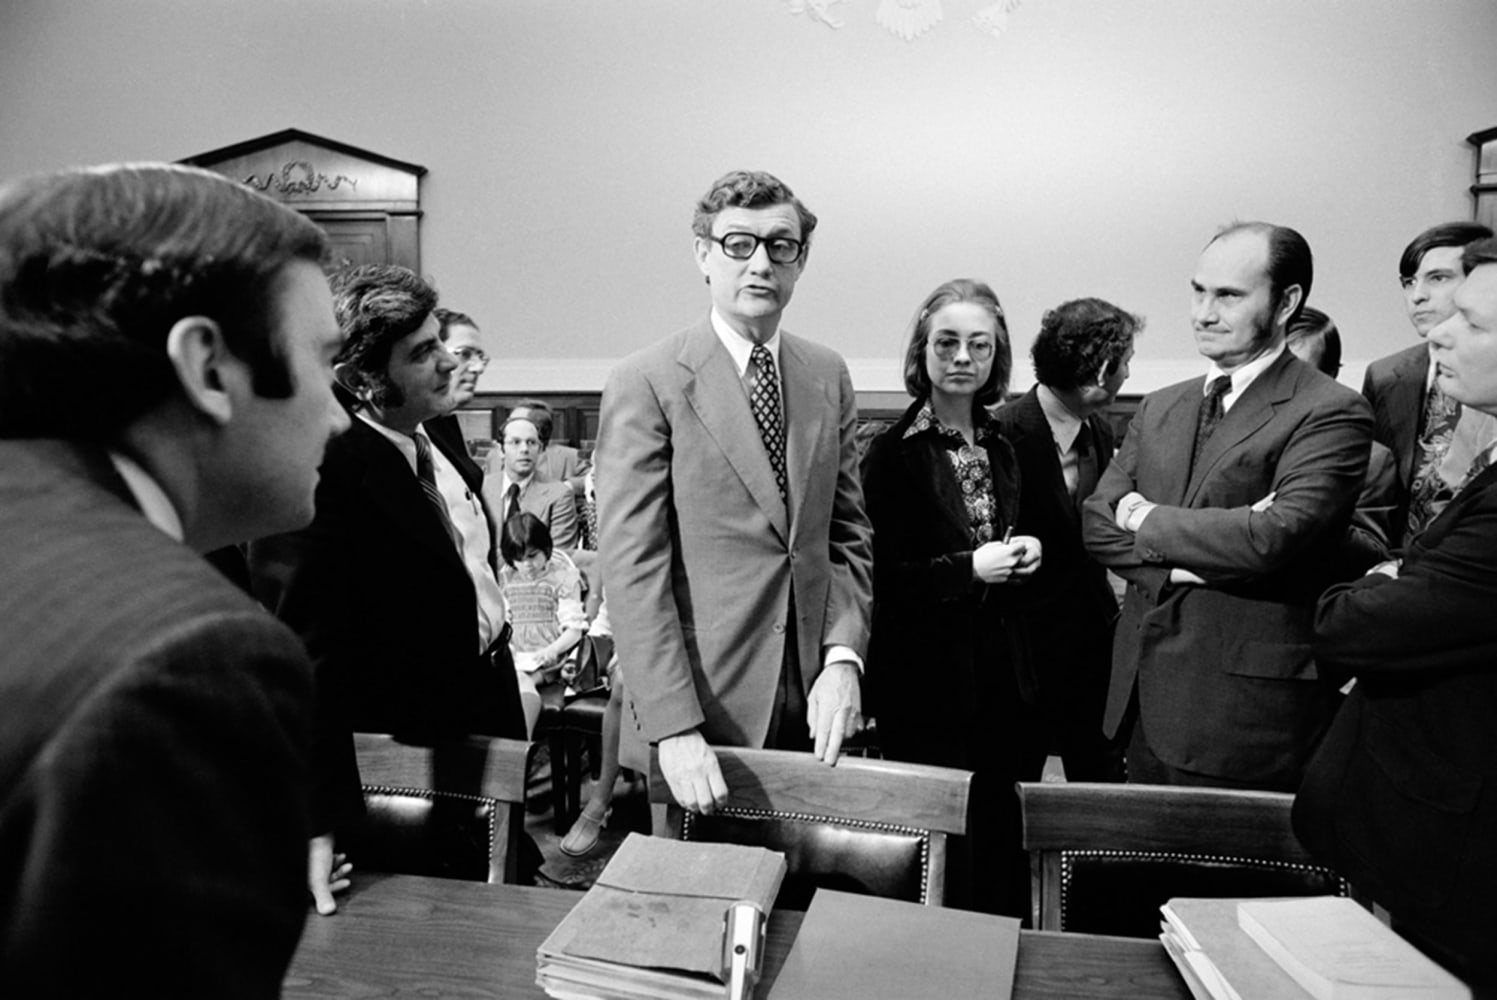 watergate scandal attacked one of the chief features of democracy